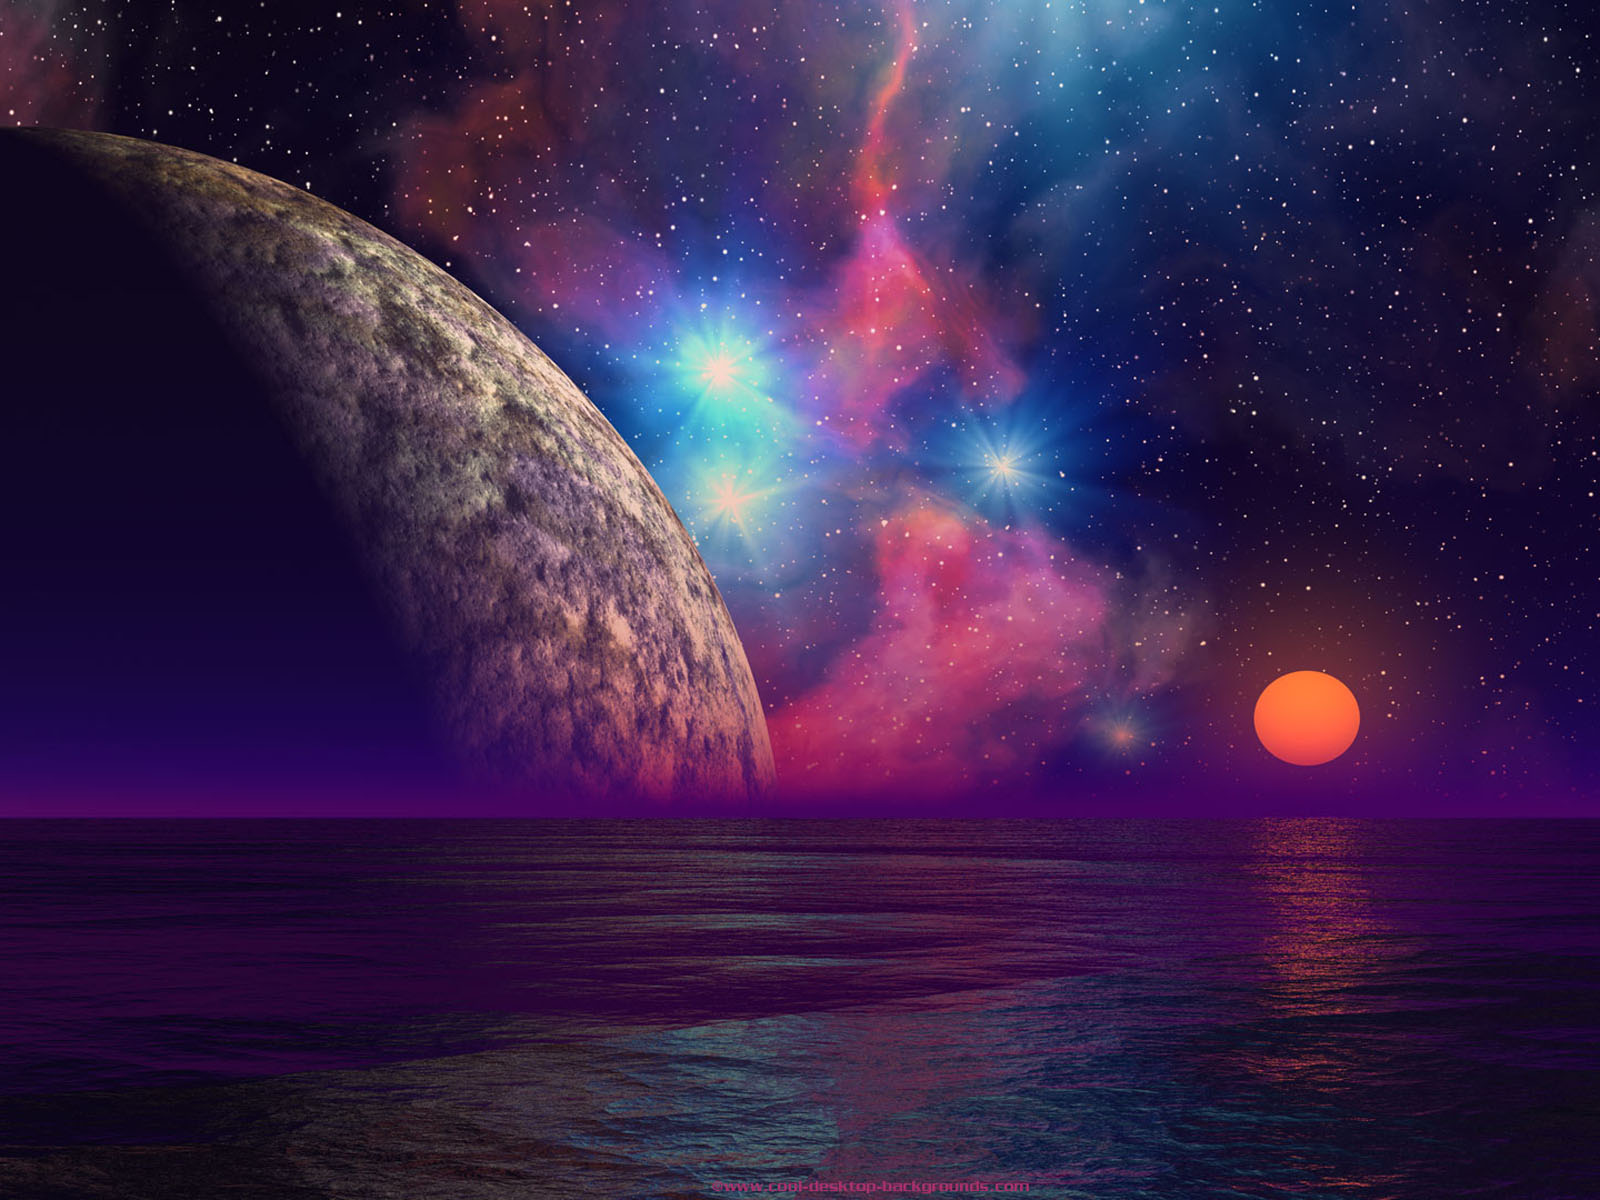 Wallpapers alien sunset wallpapers for Paesaggi bellissimi per desktop